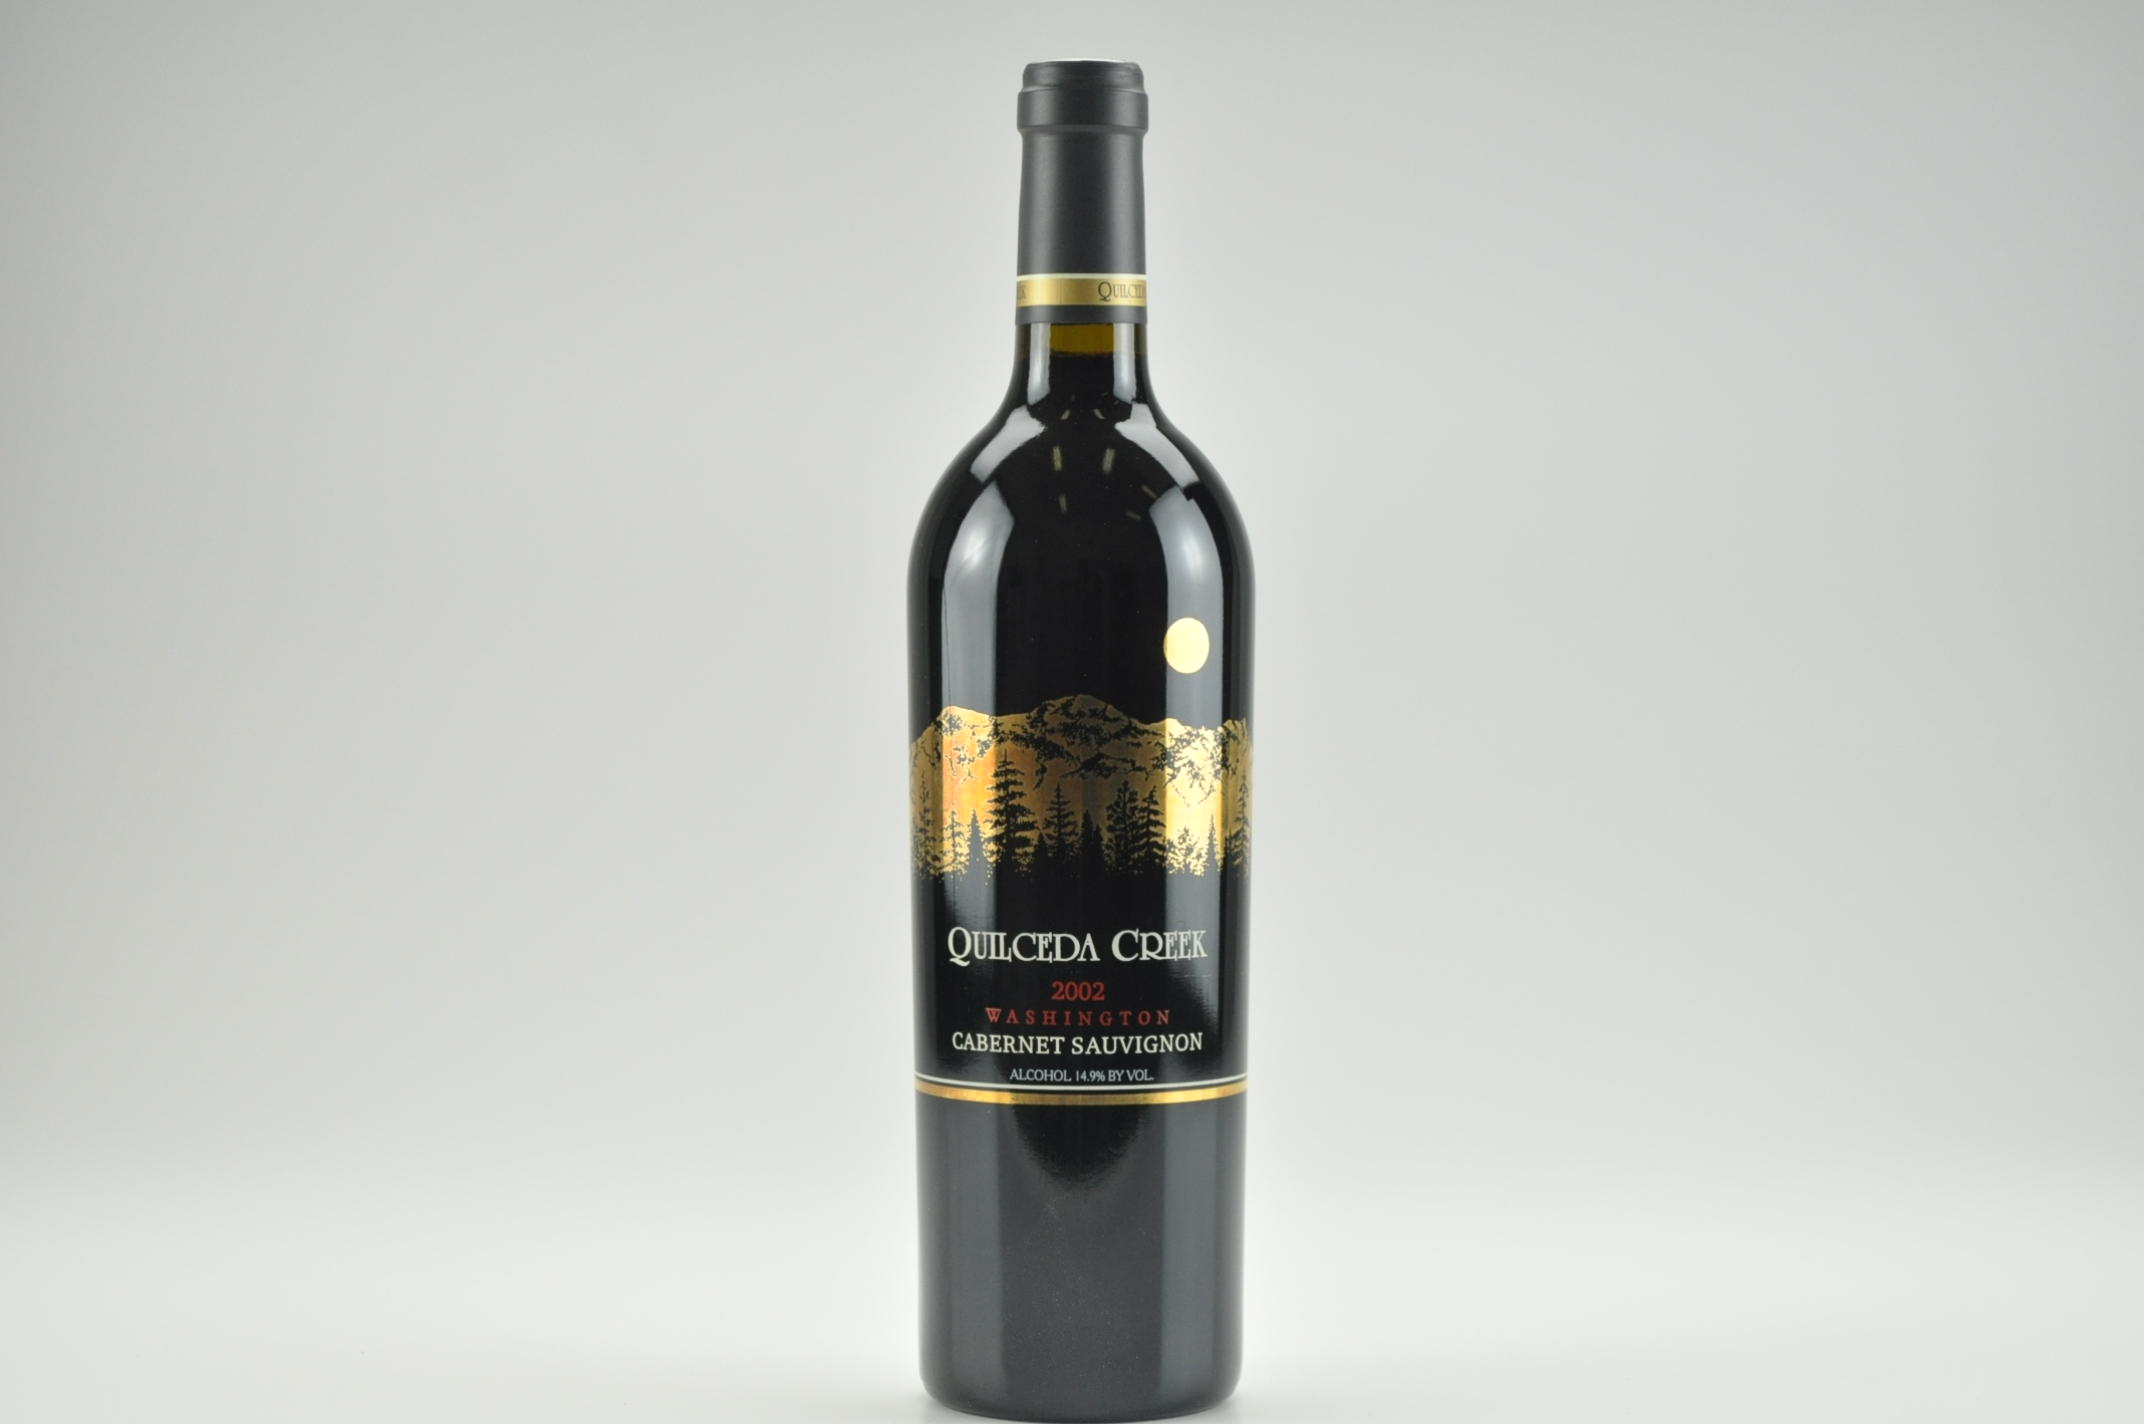 2002 Quilceda Creek Cabernet Sauvignon, Columbia Valley RP--98